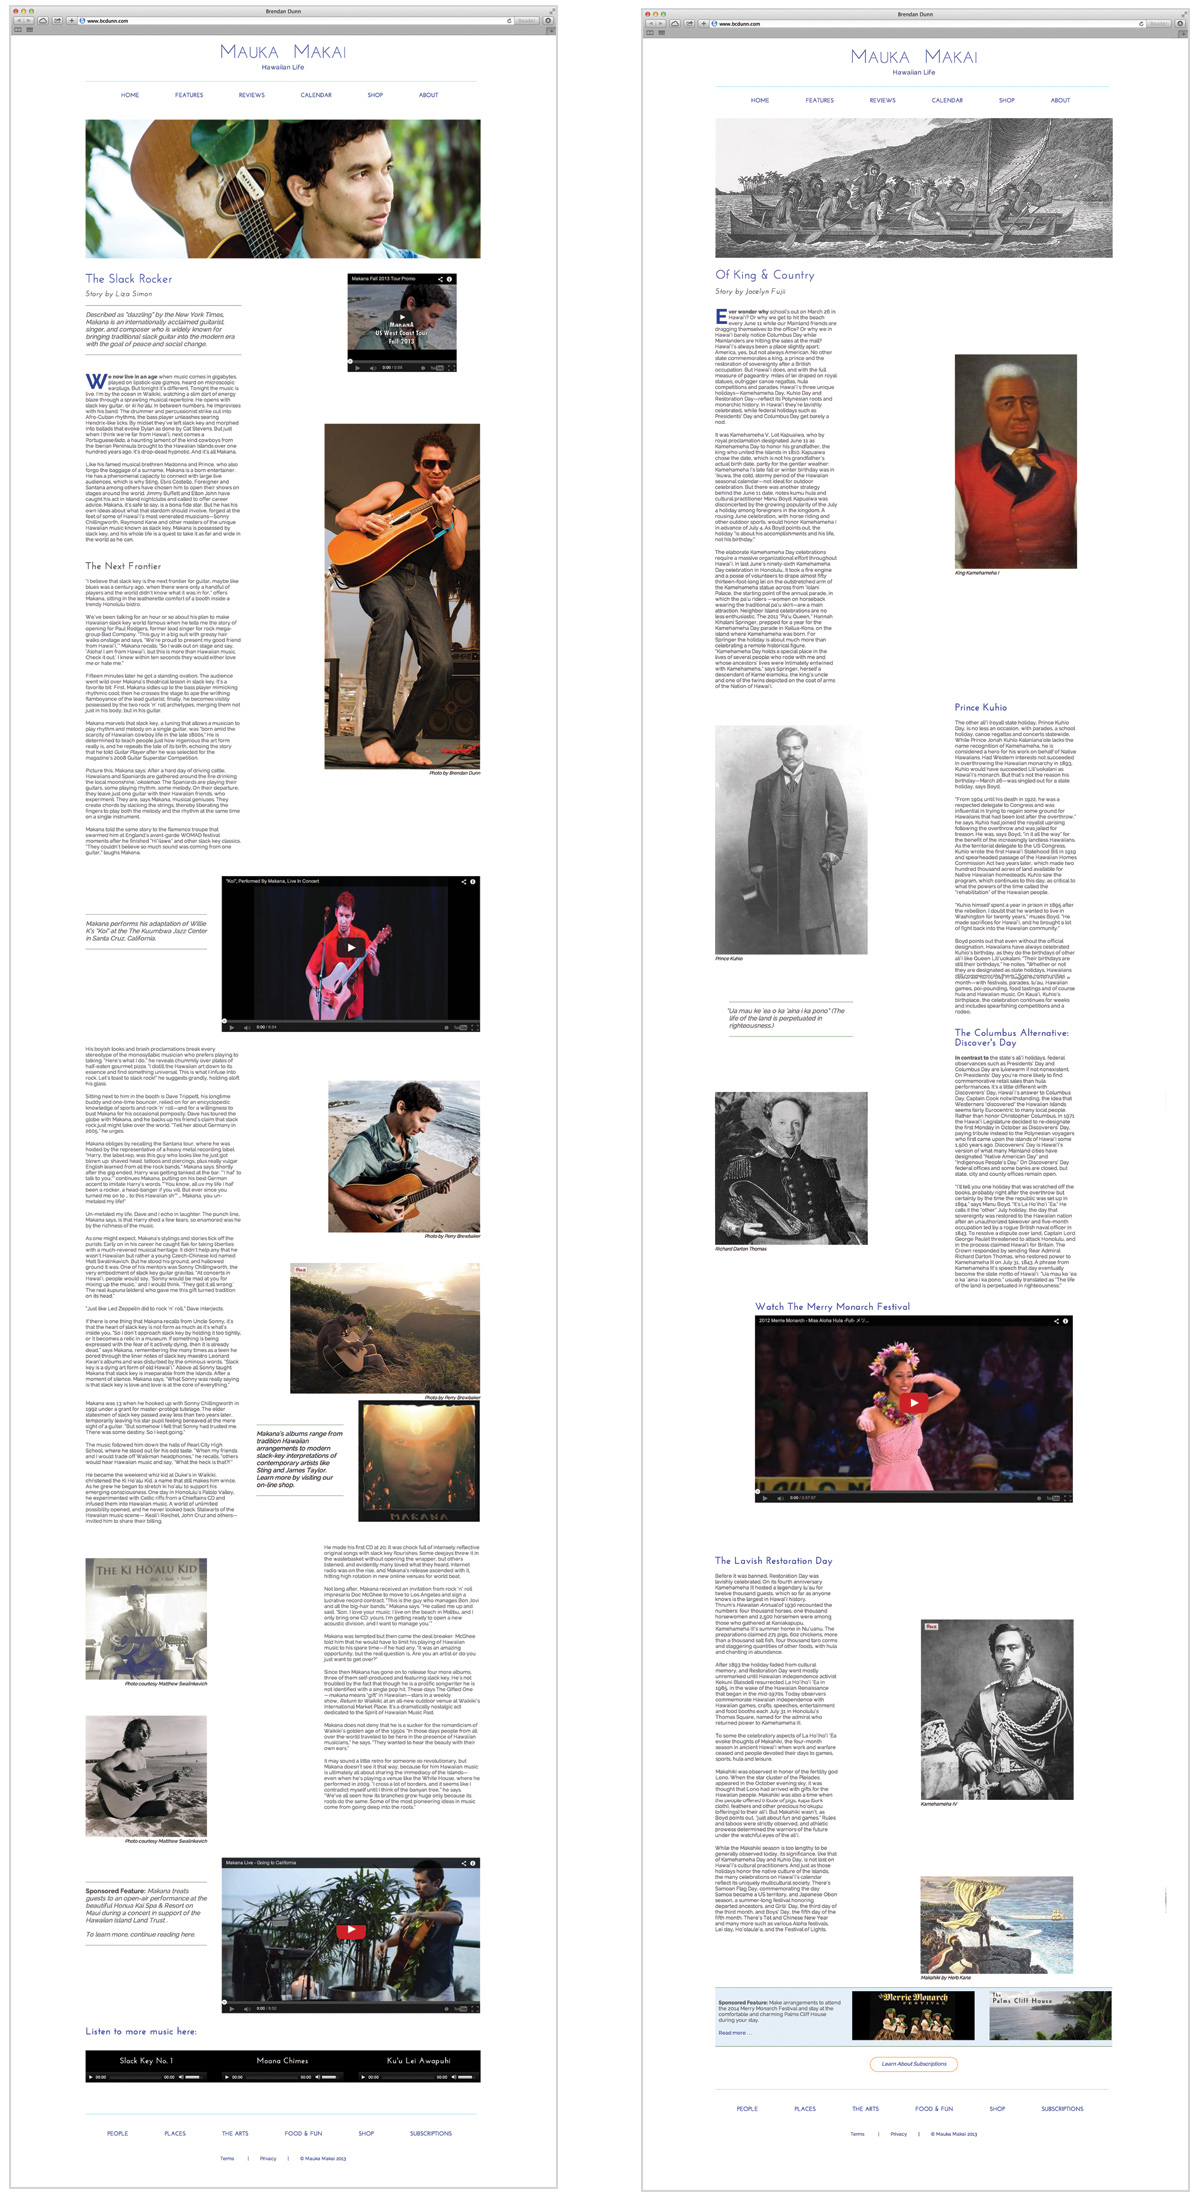 image of pages